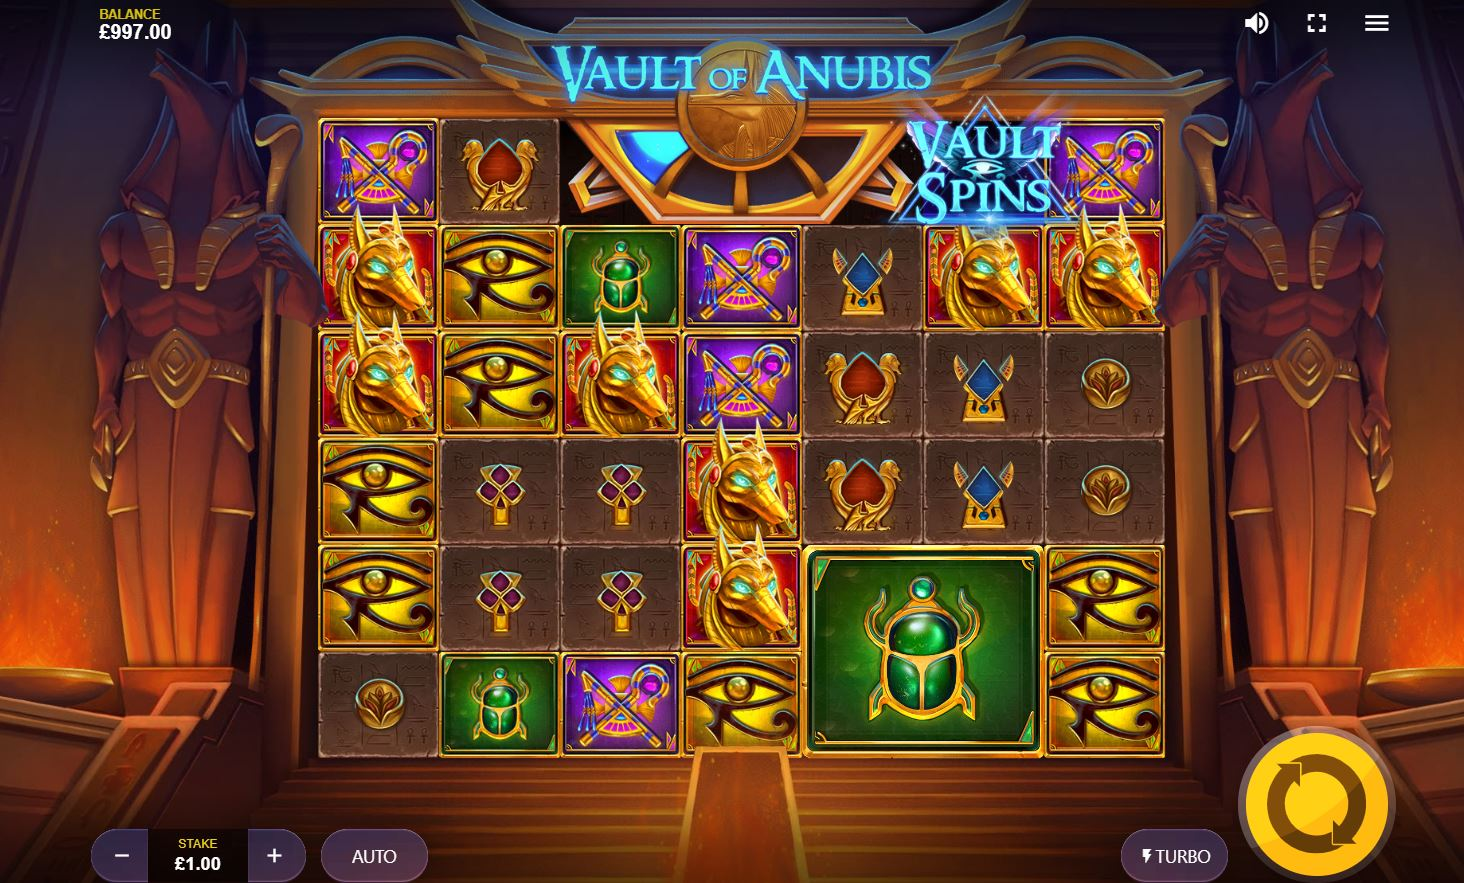 Spiele Vault Of Anubis - Video Slots Online